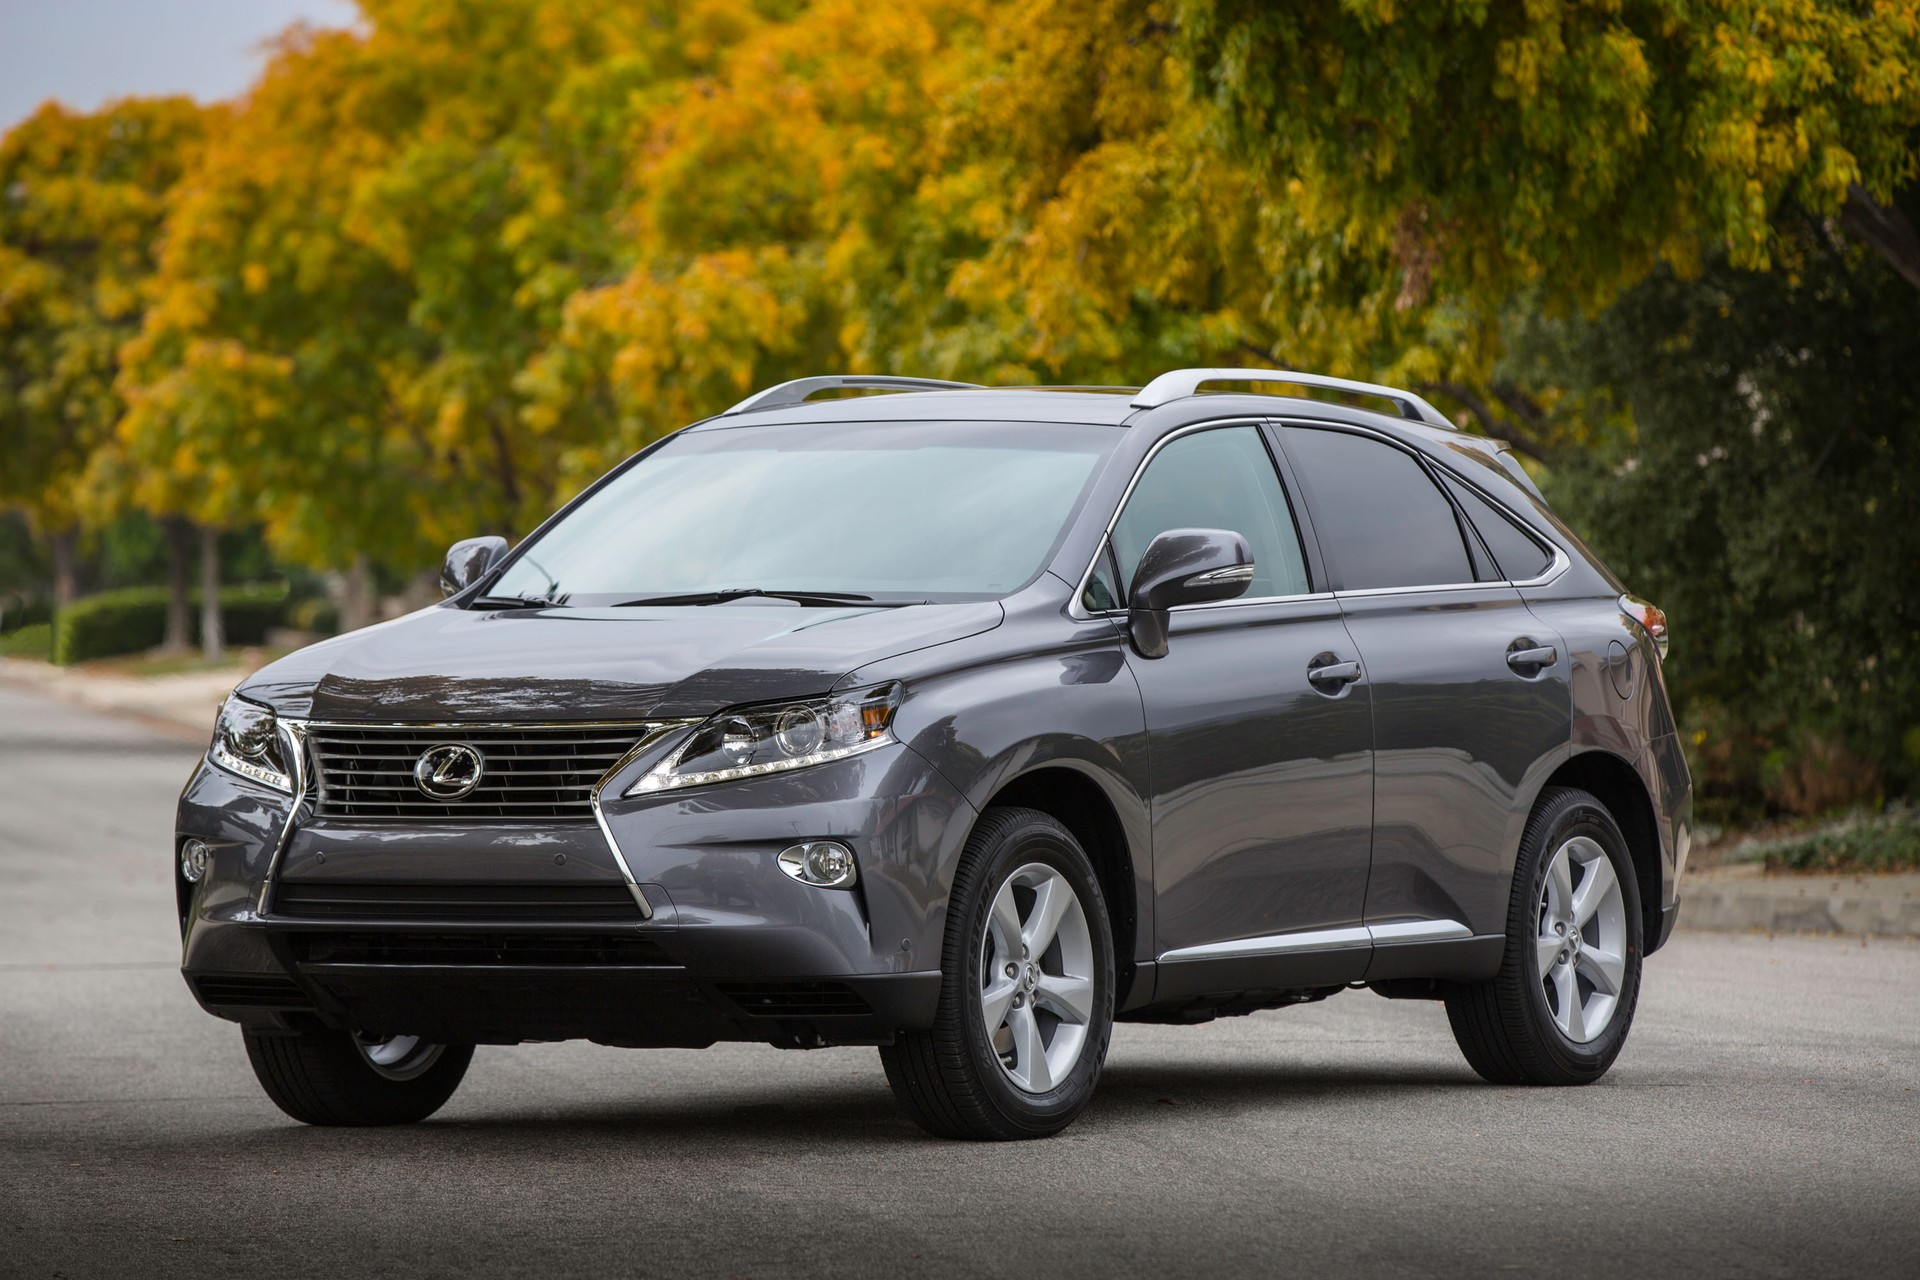 2015 Lexus RX 350 Review, Ratings, Specs, Prices, and Photos - The Car Connection